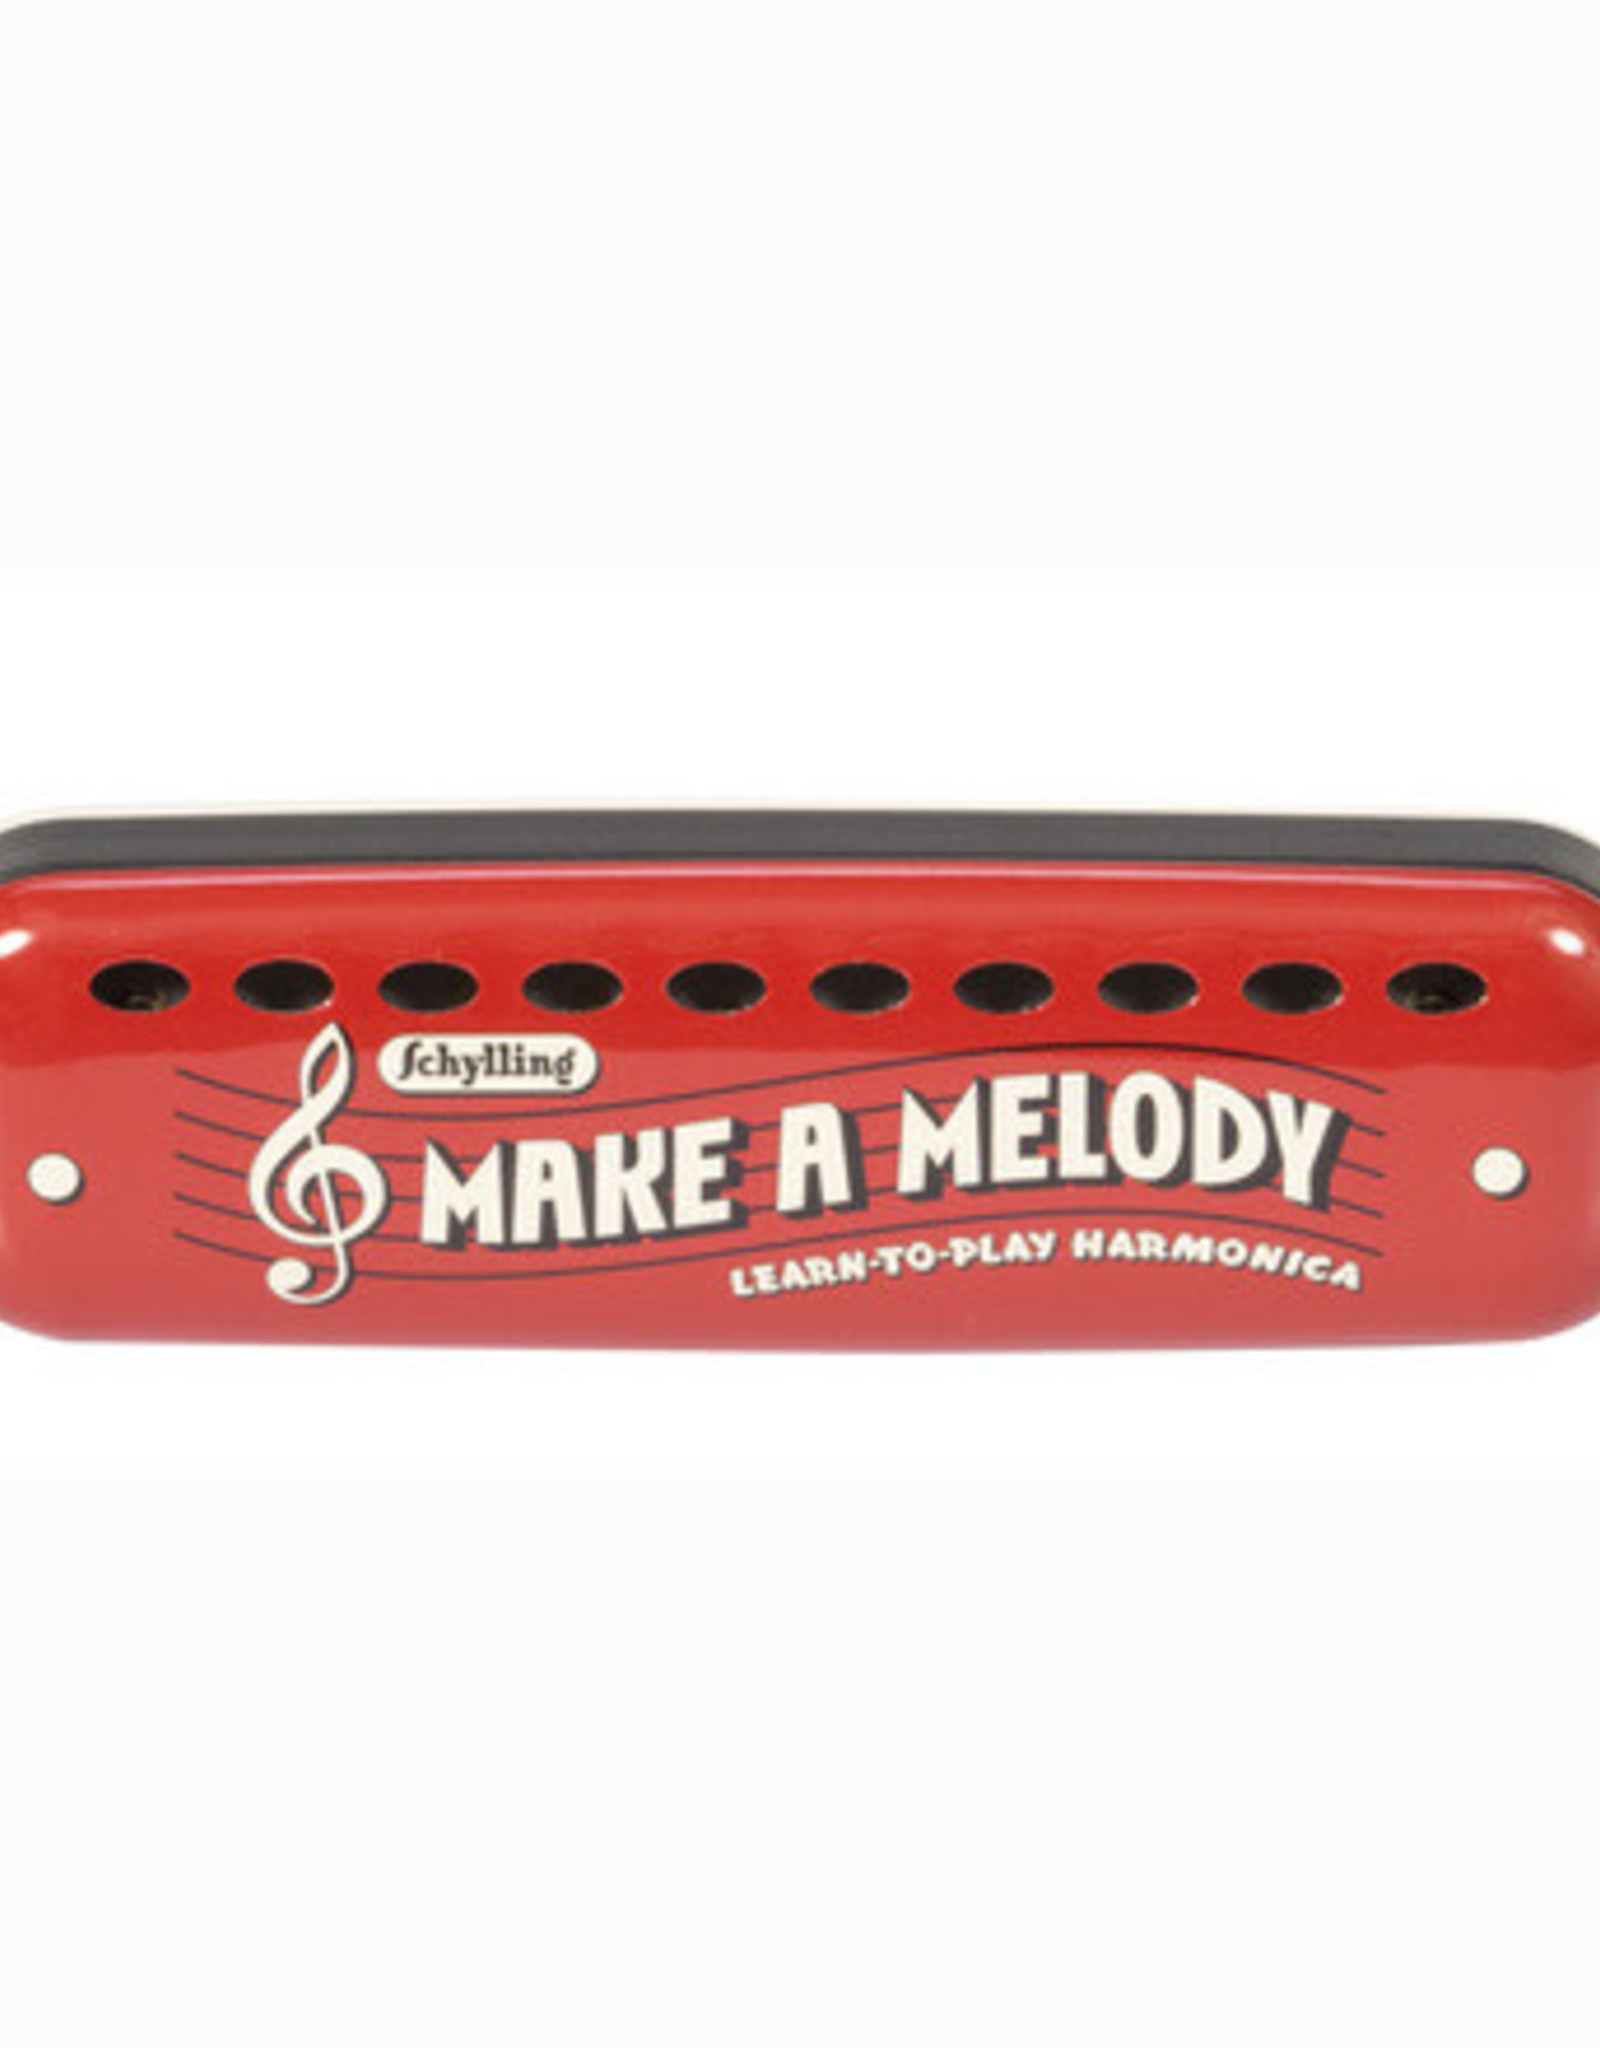 Schylling Learn-to-Play Harmonica